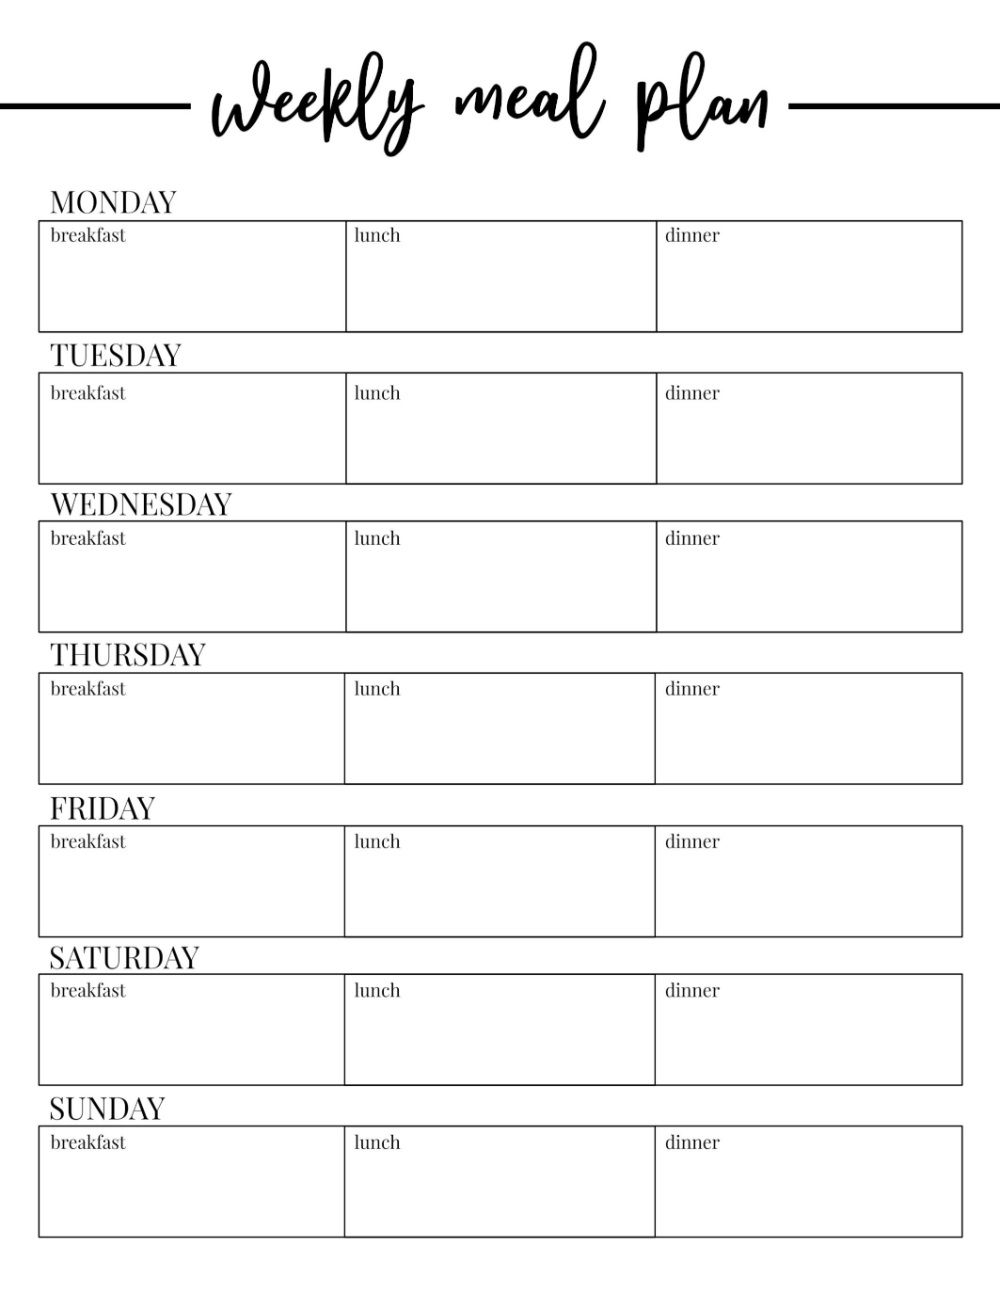 002 Astounding Meal Plan Calendar Template Highest Quality  Excel Weekly 30 DayFull